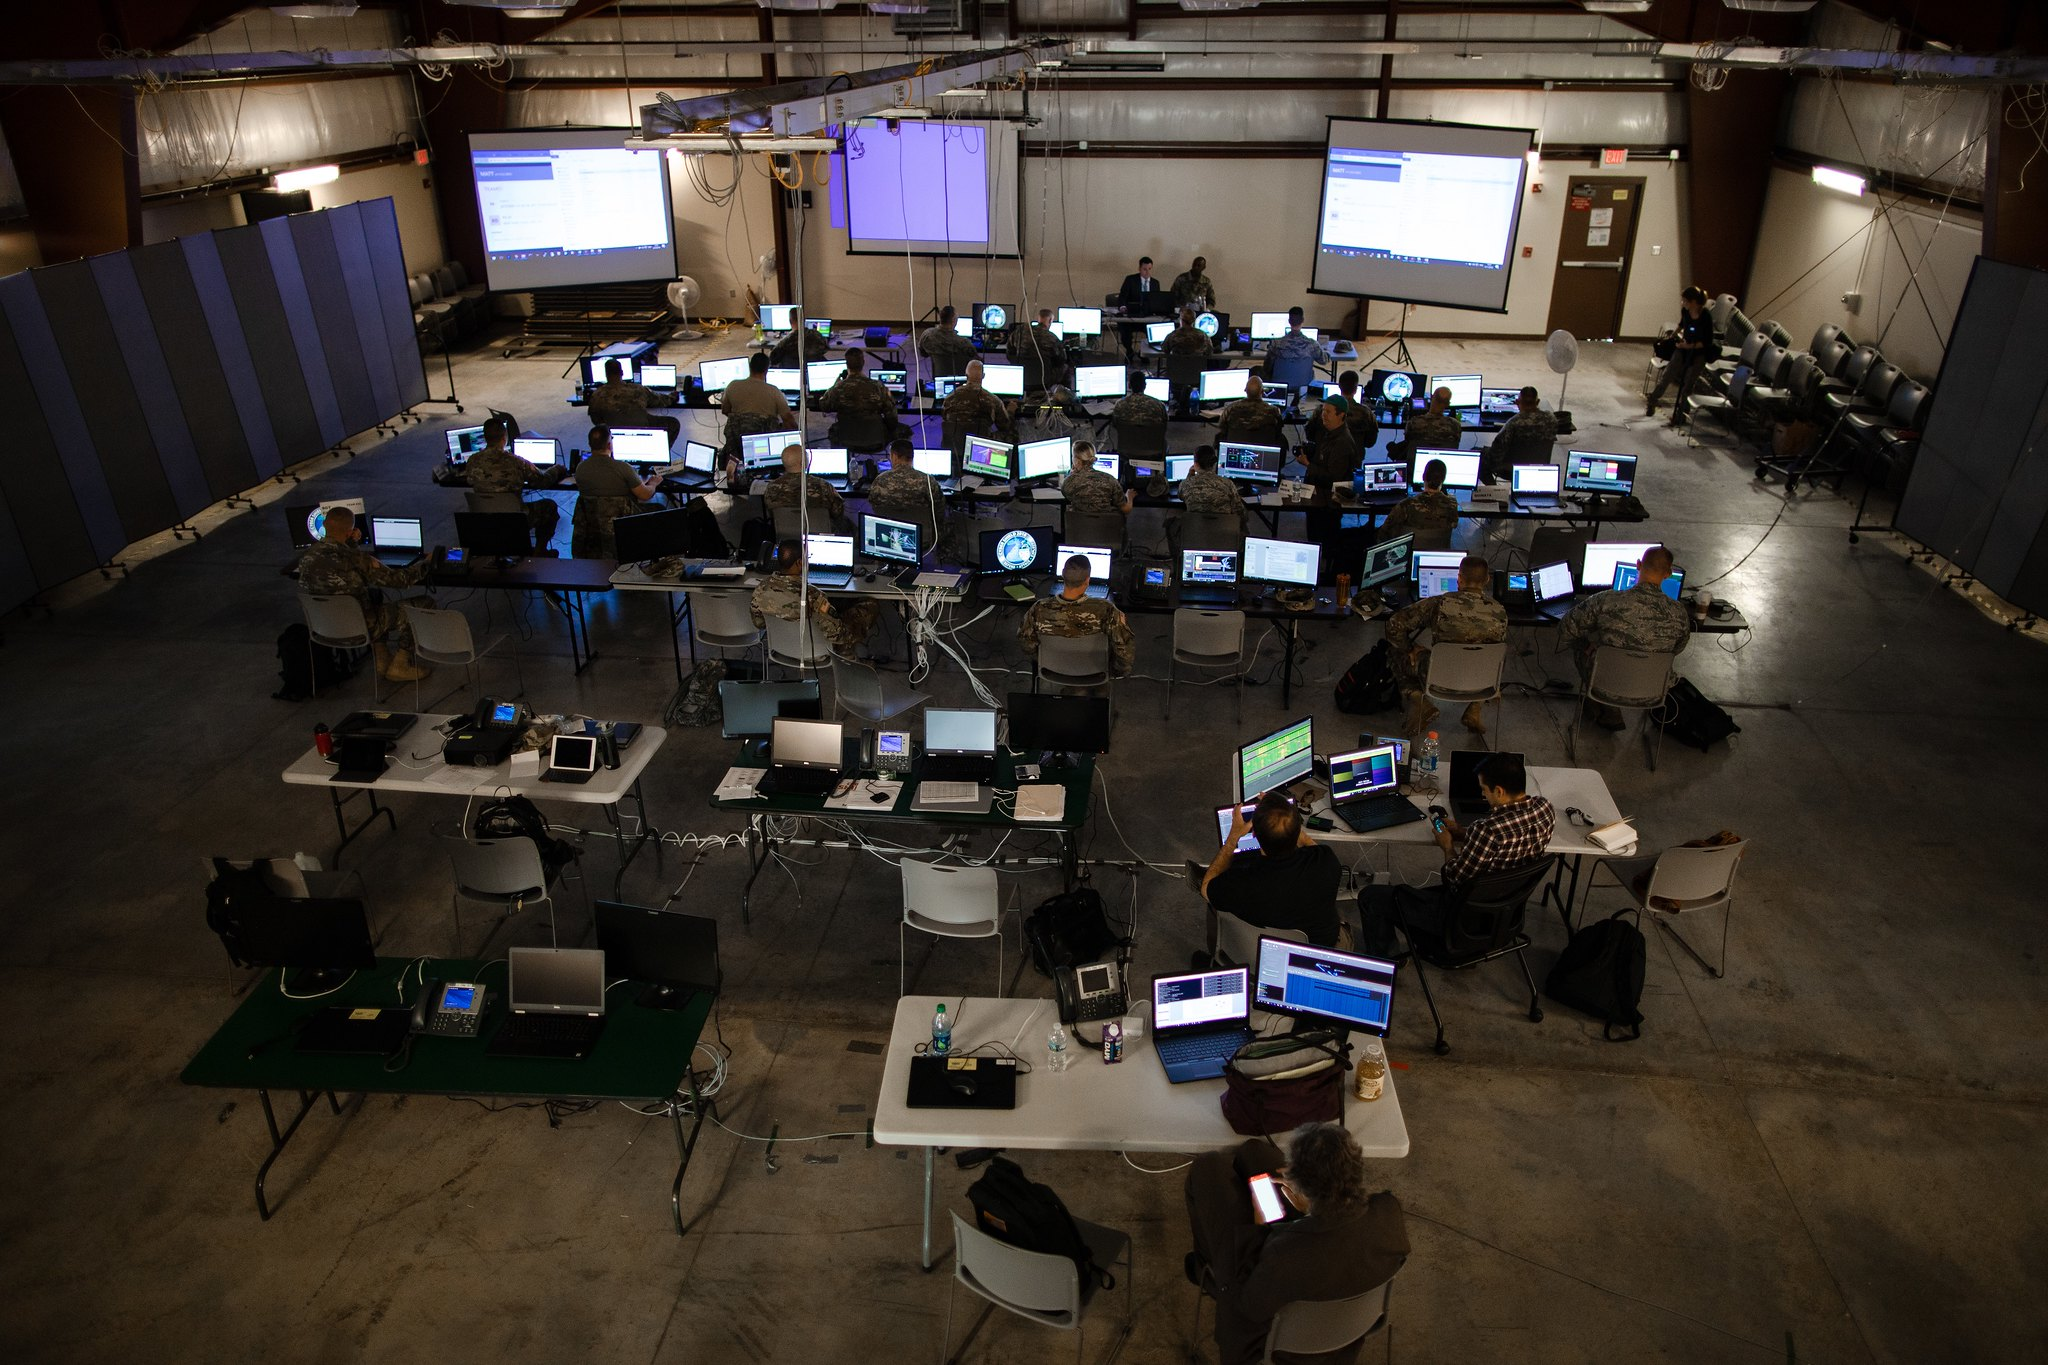 Several prime contractors are pursuing a $1 billion contract that includes developing the Persistent Cyber Training Environment. (Army Cyber Command)